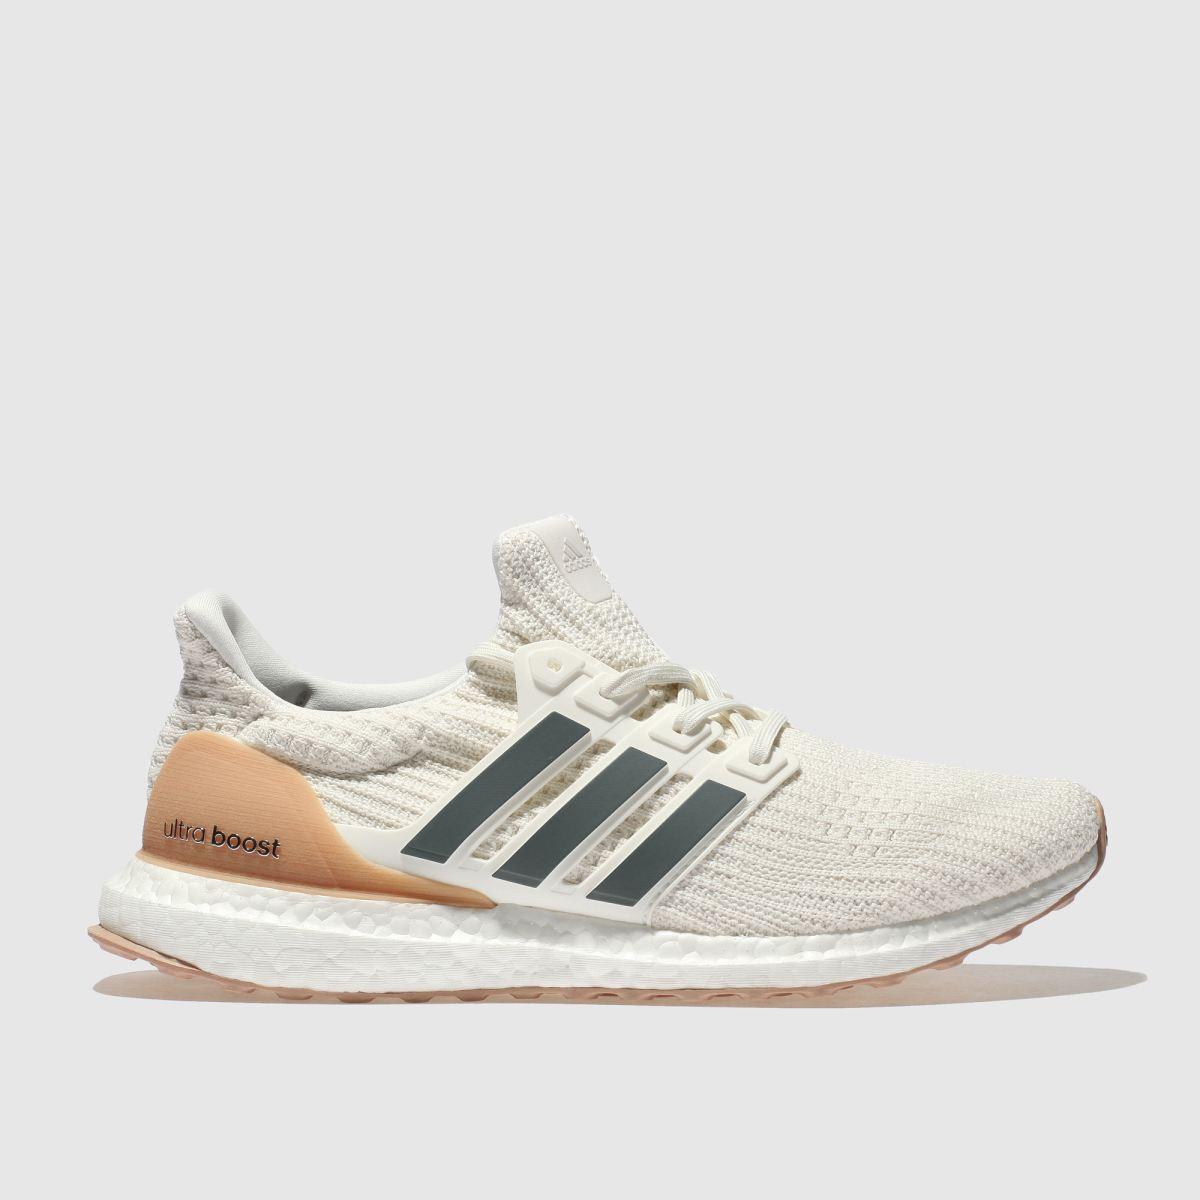 Adidas White & Navy Ultraboost Trainers